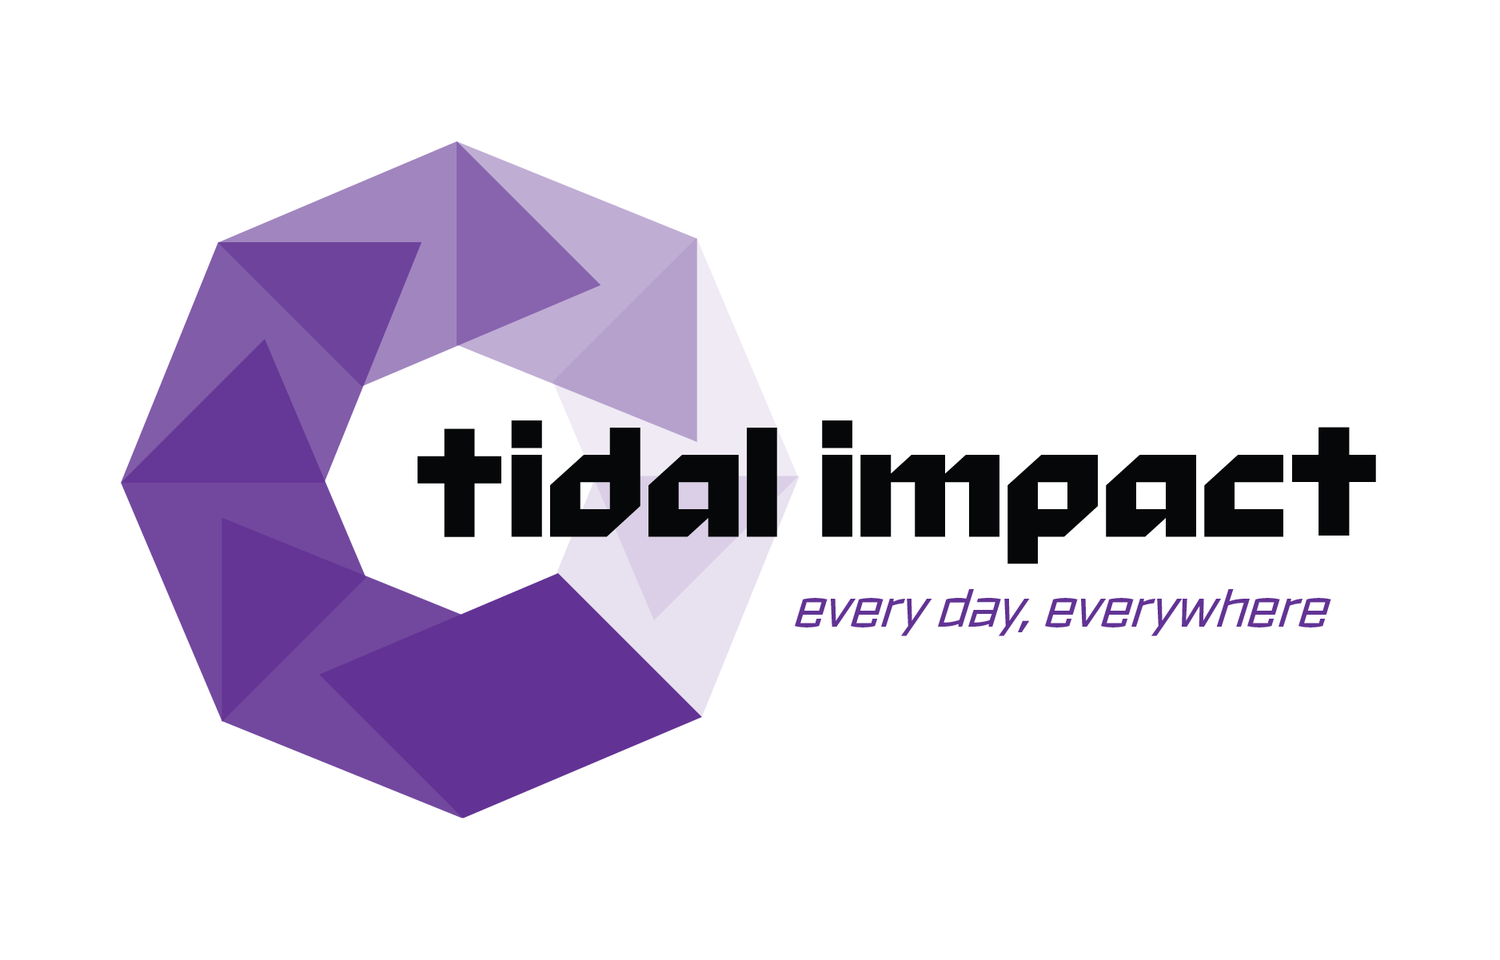 Tidal+Impact+2019+Logo+with+tagline+-+White+Background.png